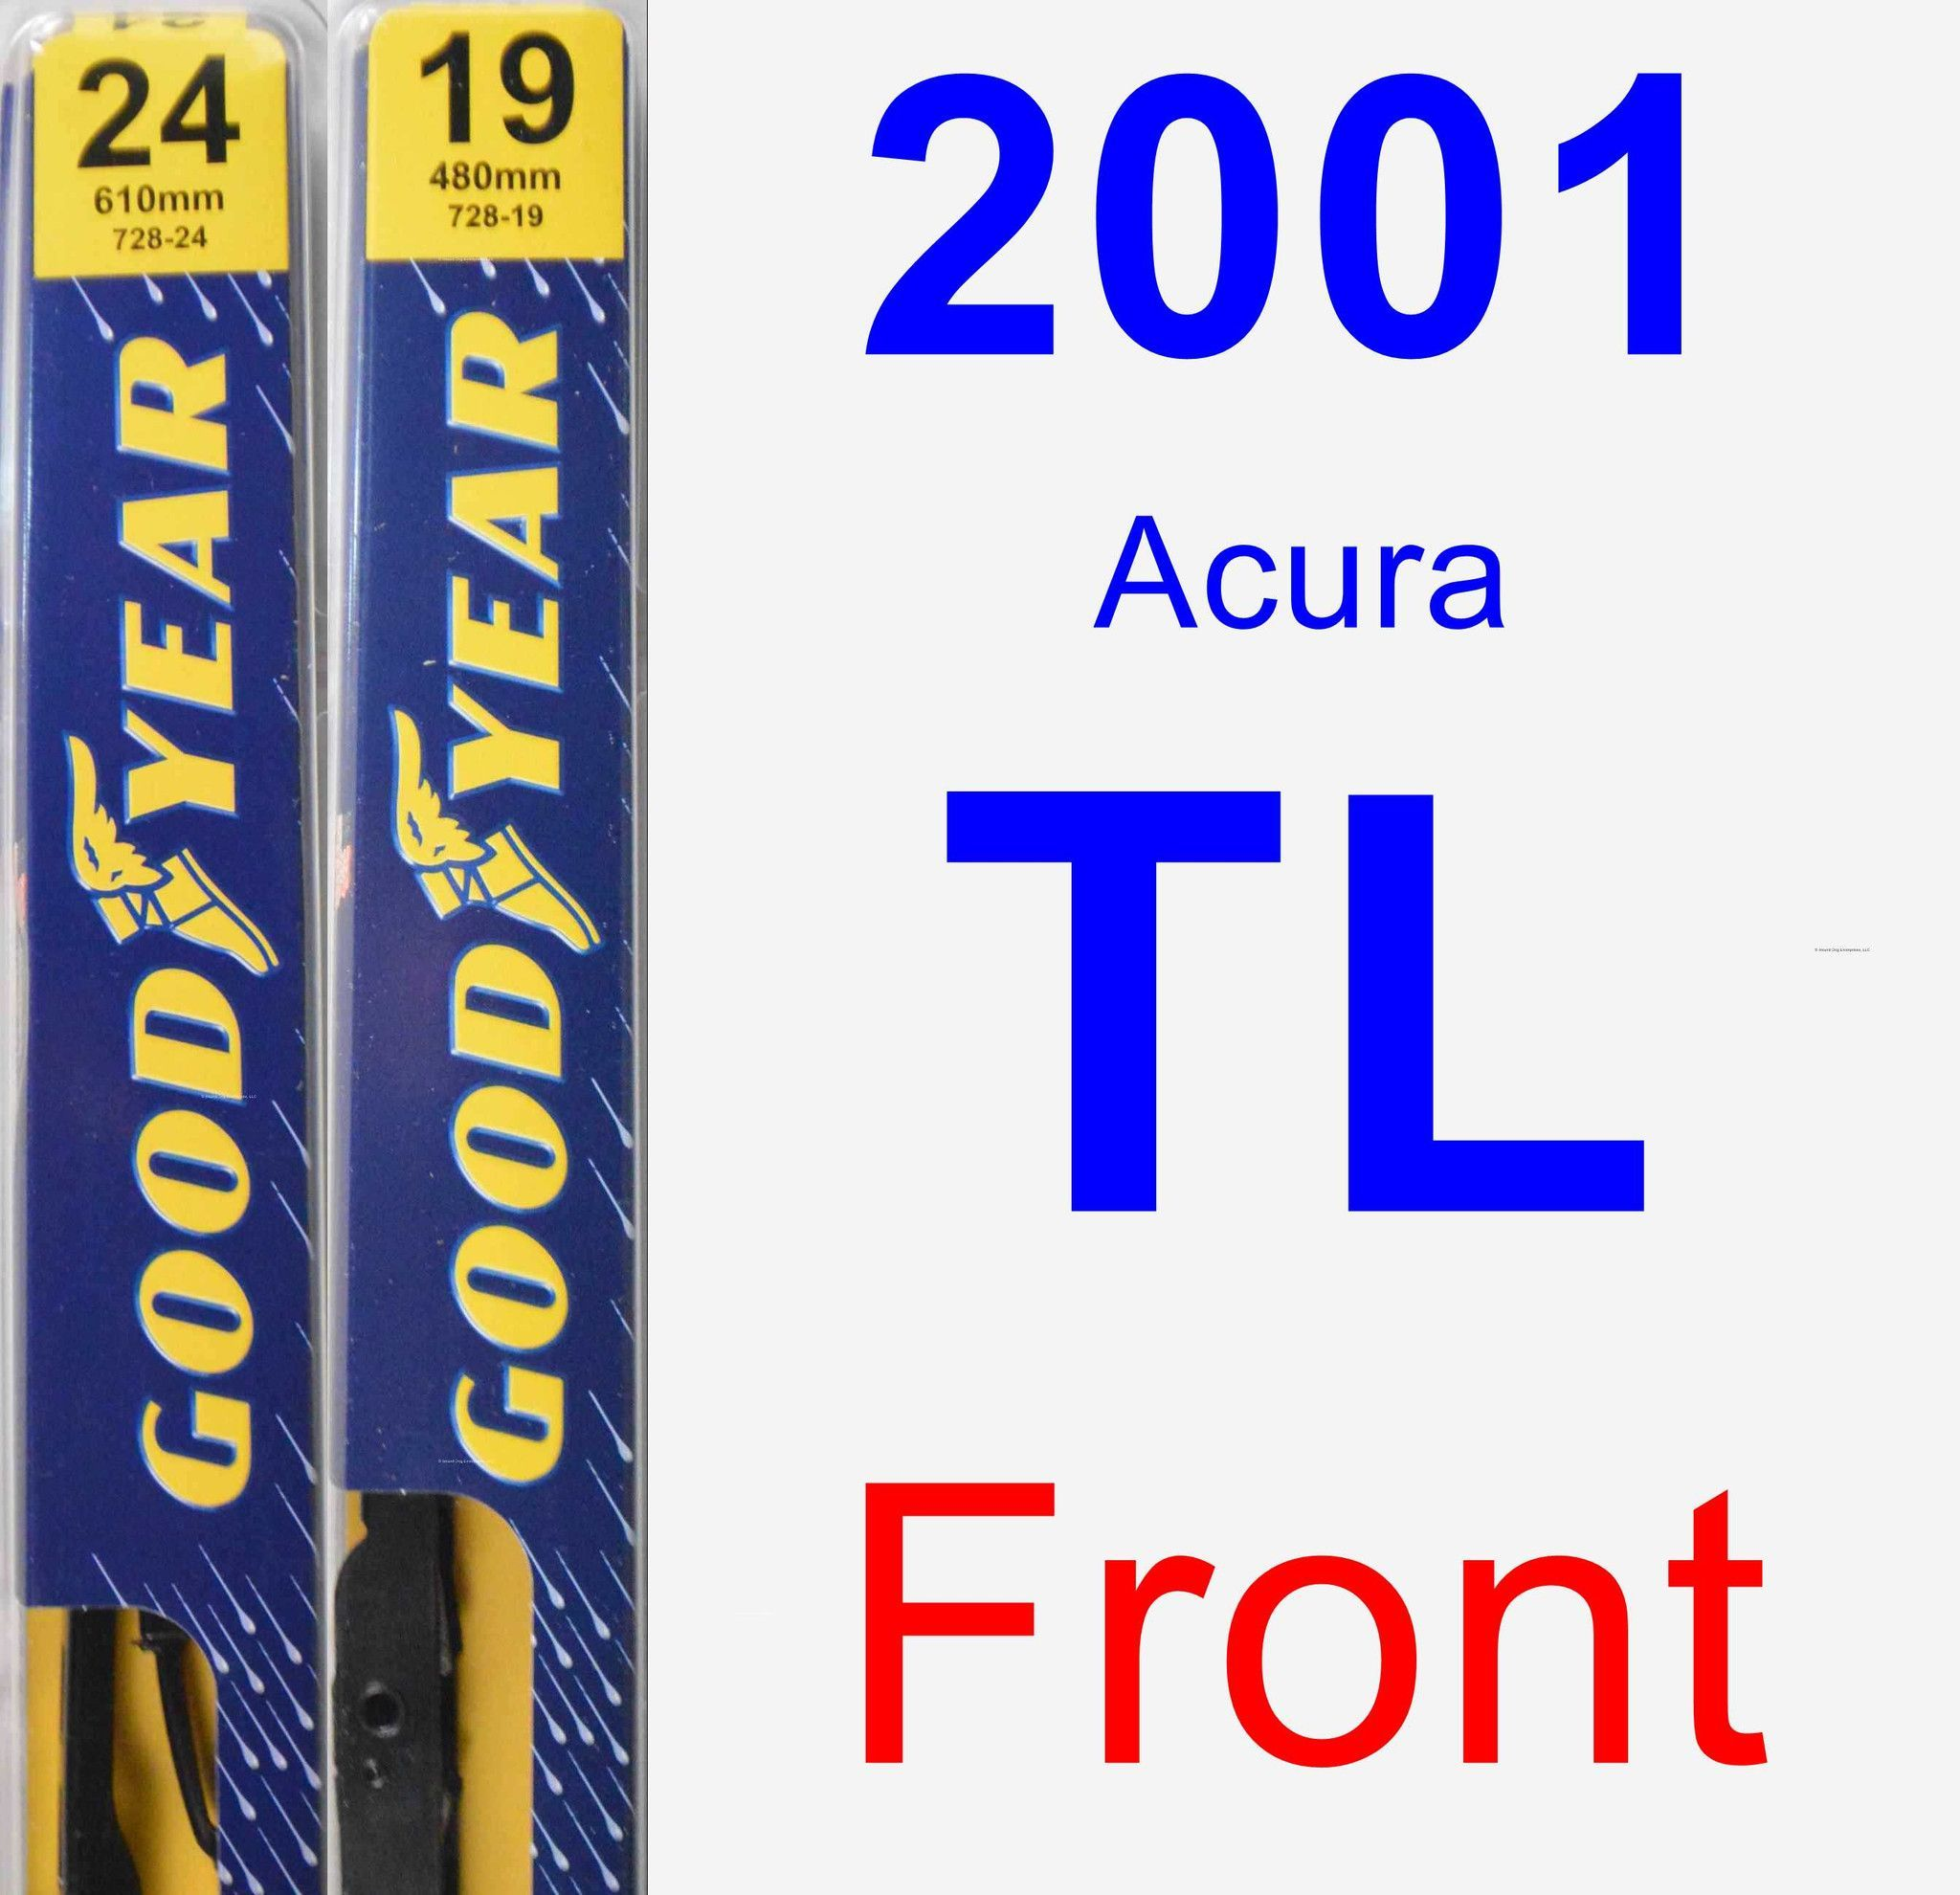 Front Wiper Blade Pack For 2001 Acura TL - Premium